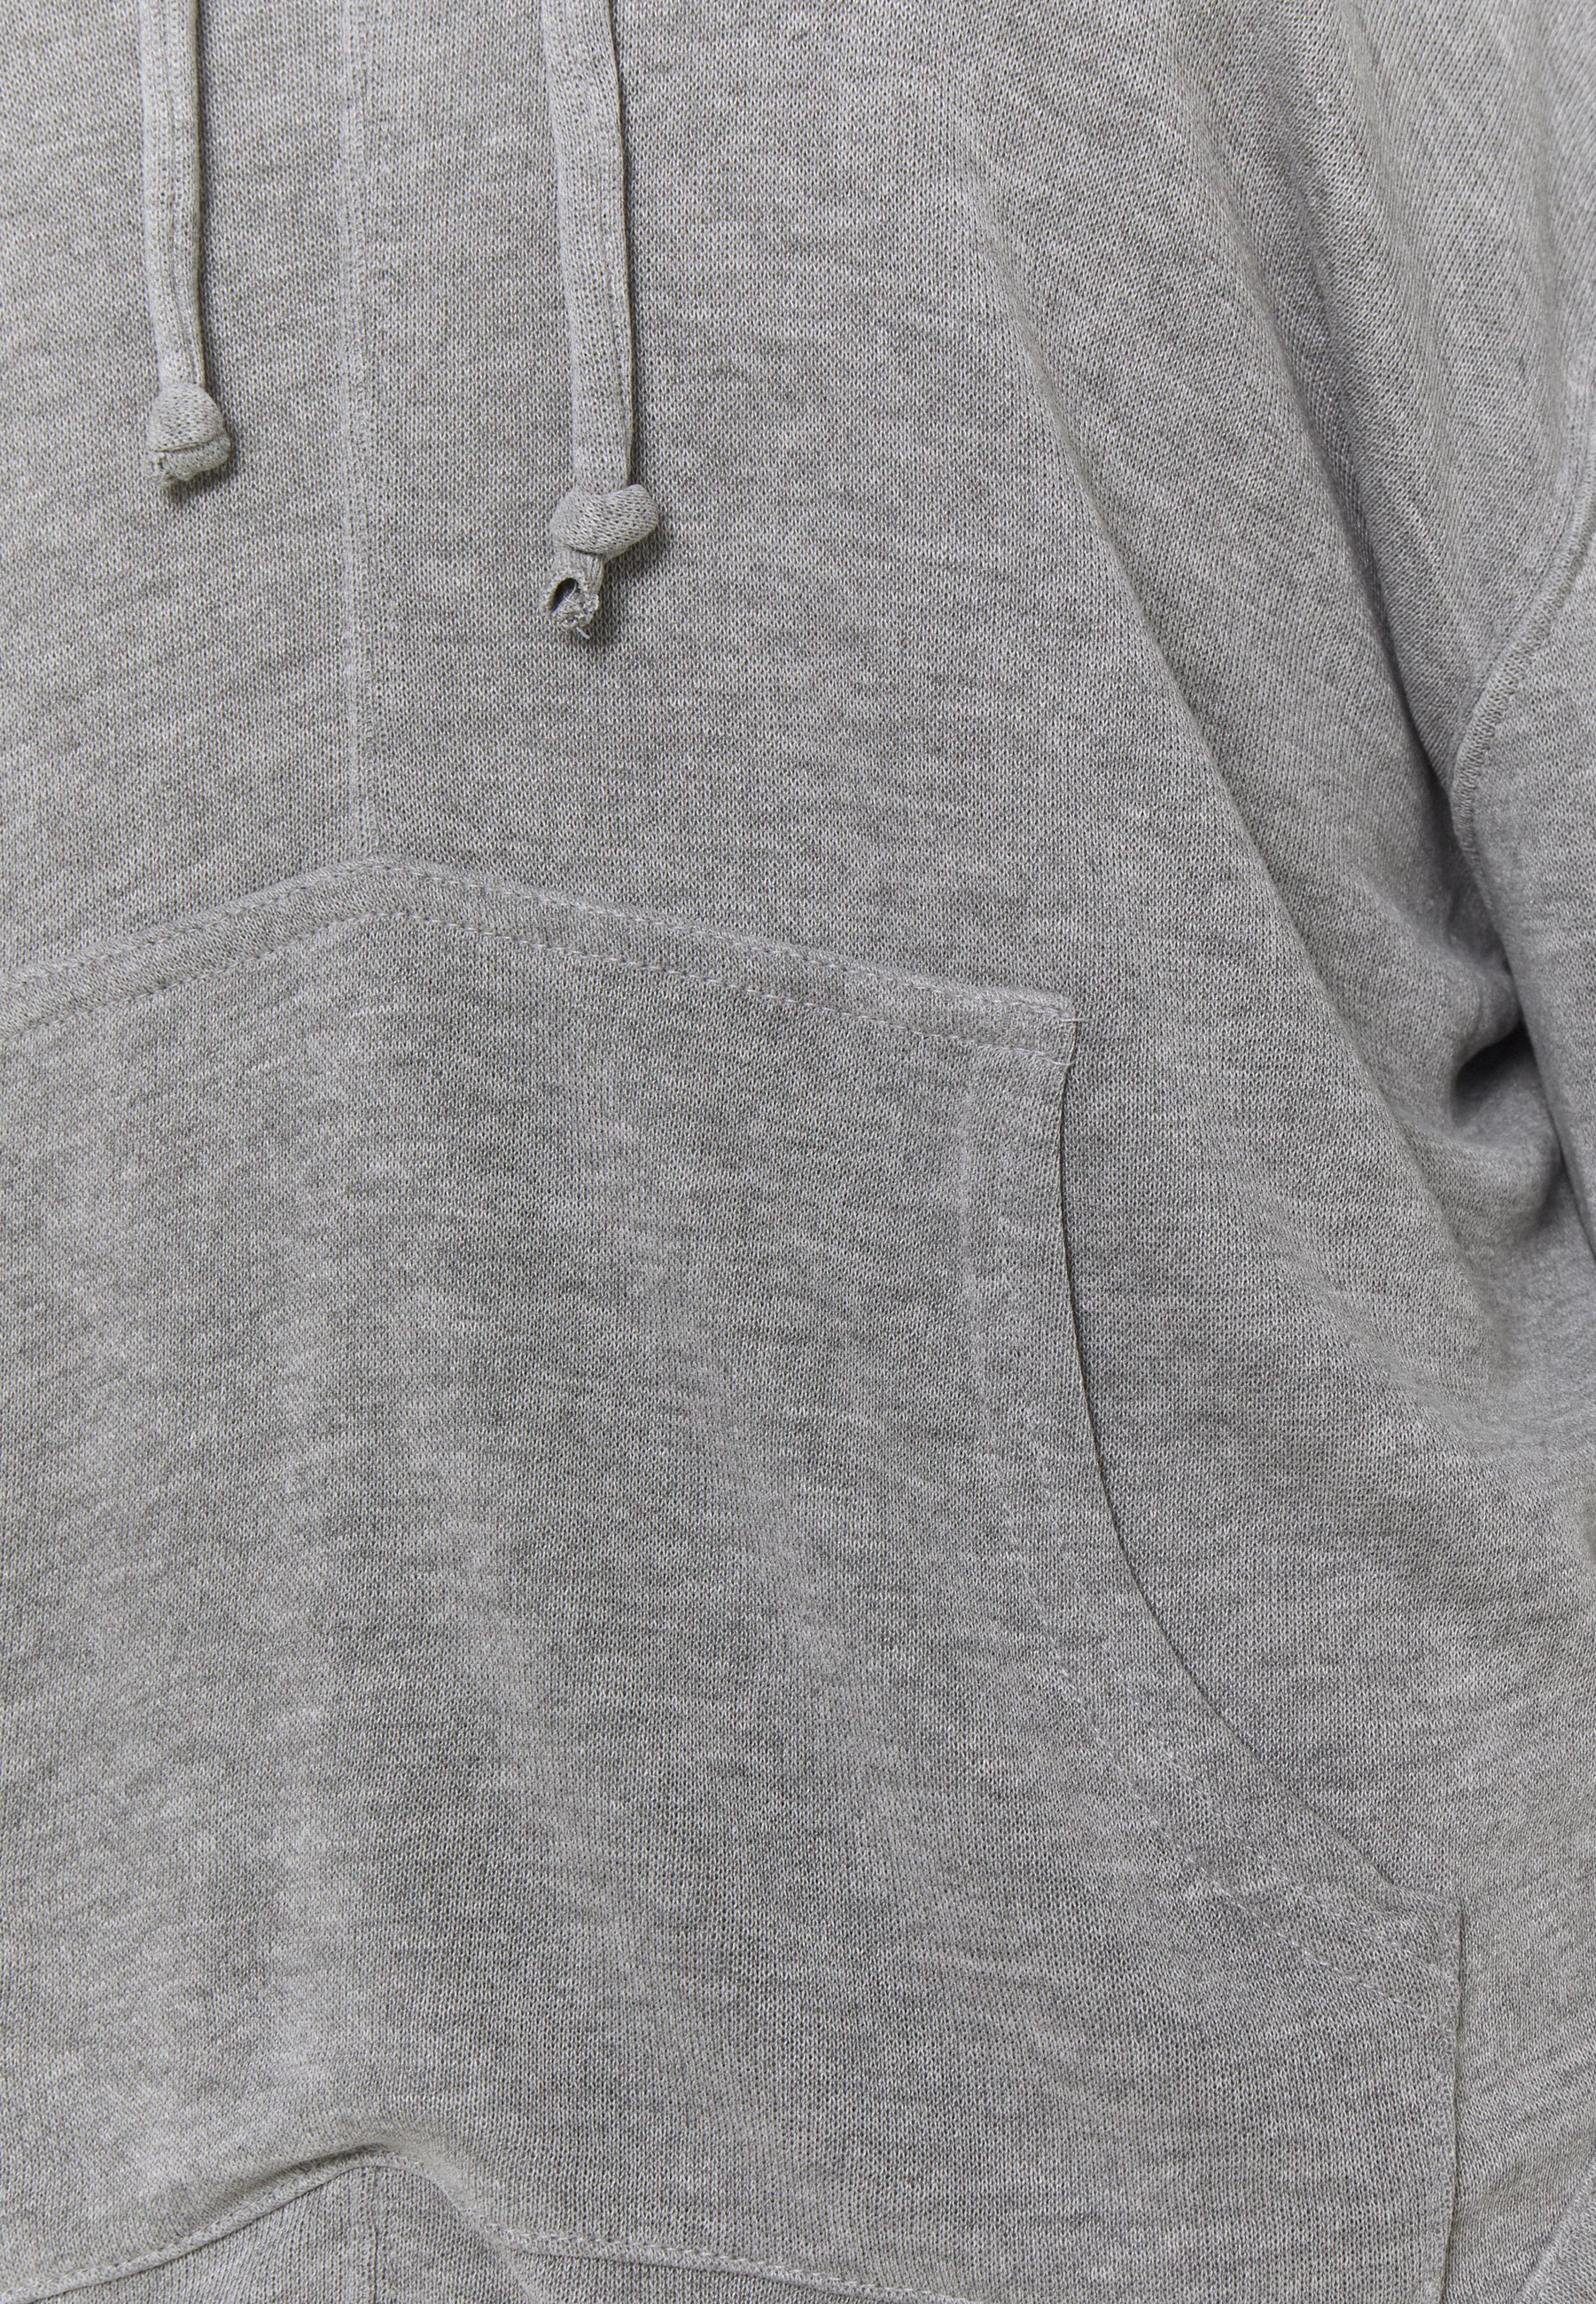 Low Cost Women's Clothing Free People BACK INTO IT HOODIE Hoodie grey combo zY1NgWnOx